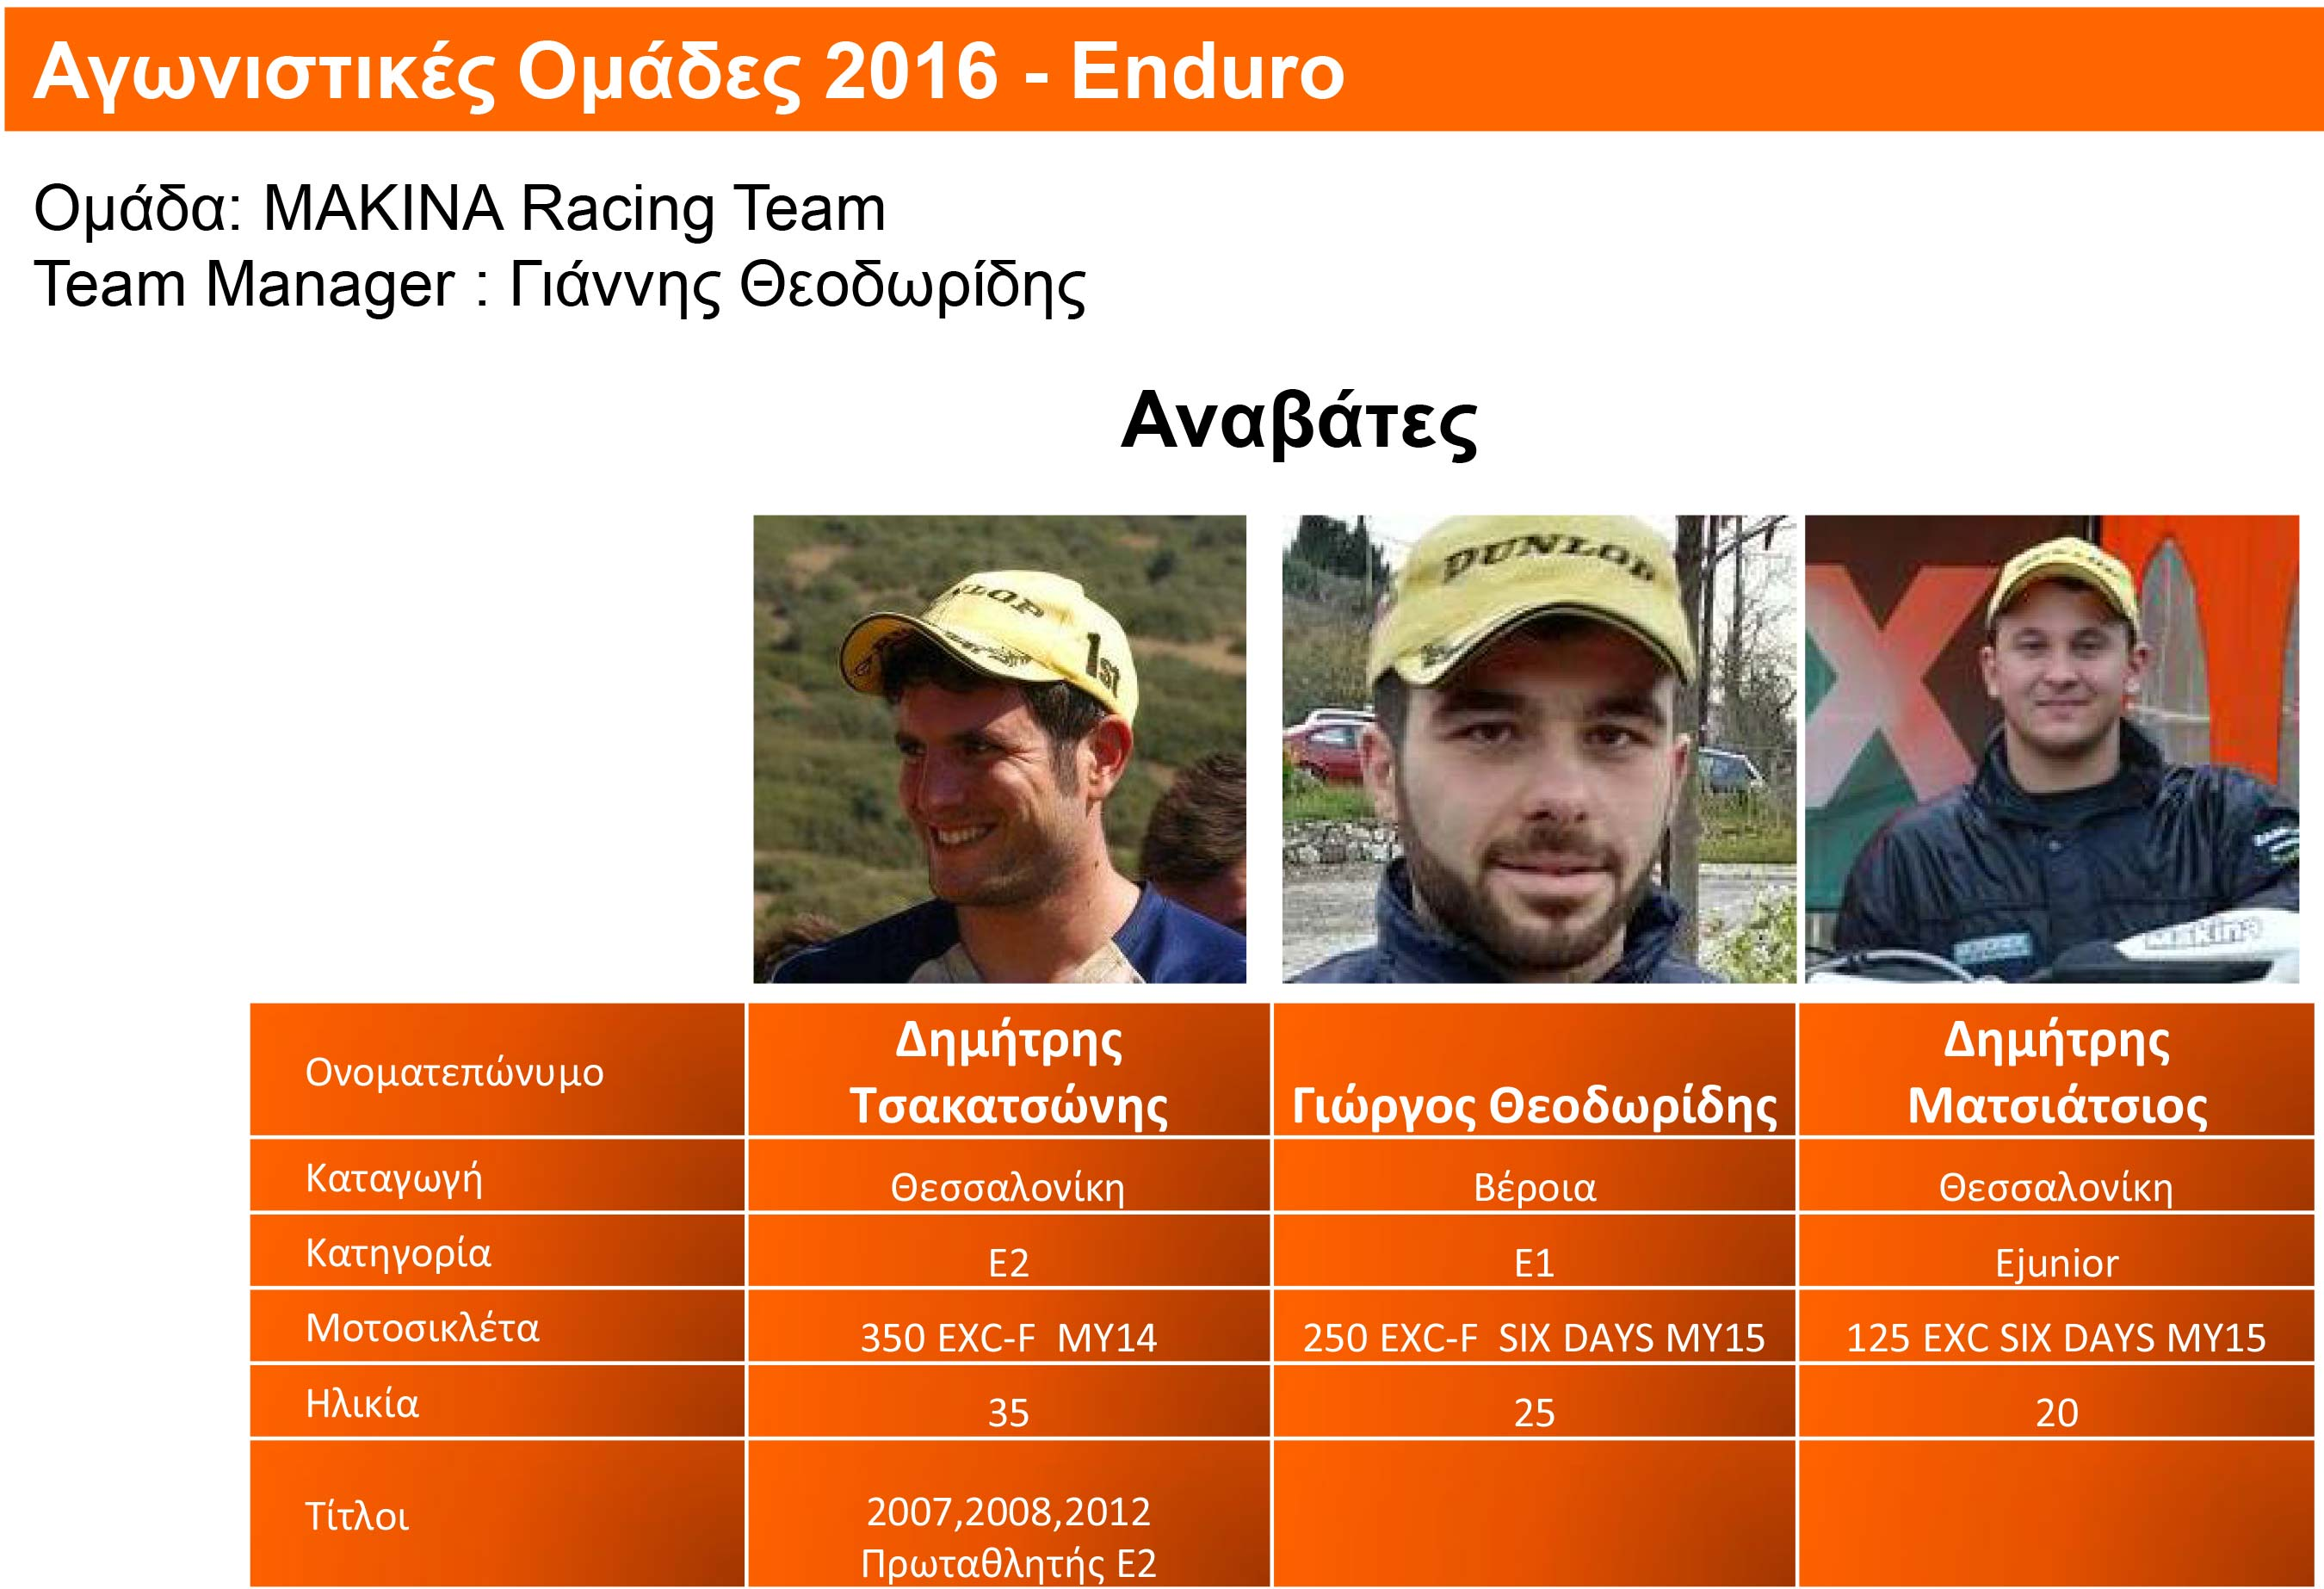 Makna-Racing-Teams-Enduro-2016